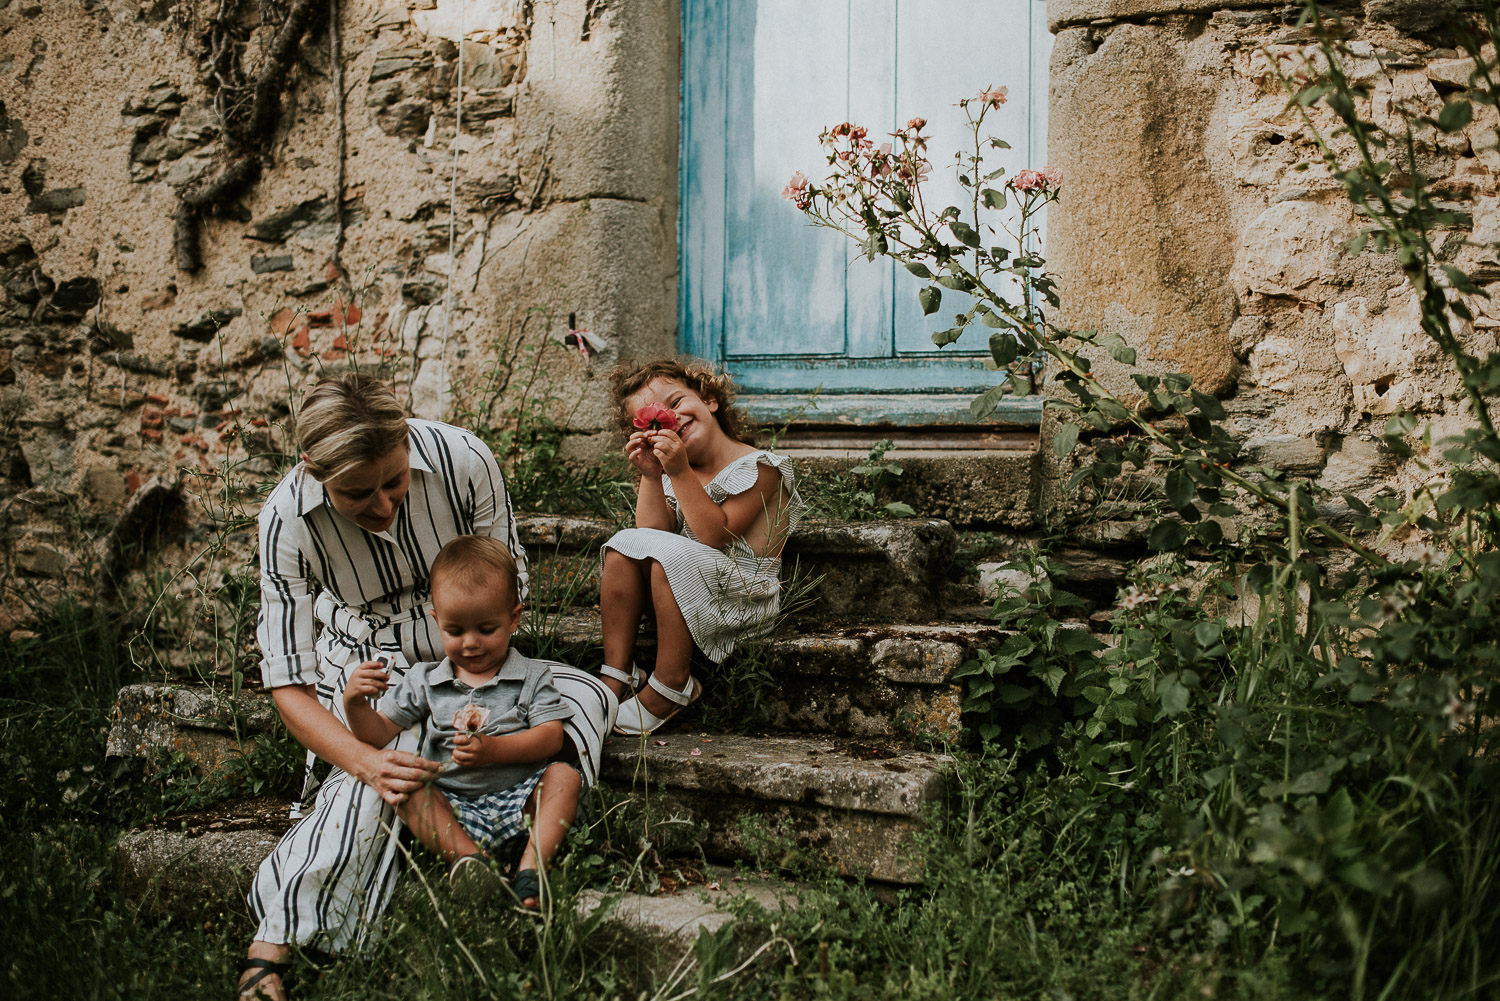 castres_south_west_france_family_lifestyle_emotive_storytelling__tarn_switzerland_katy_webb_photography_UK68